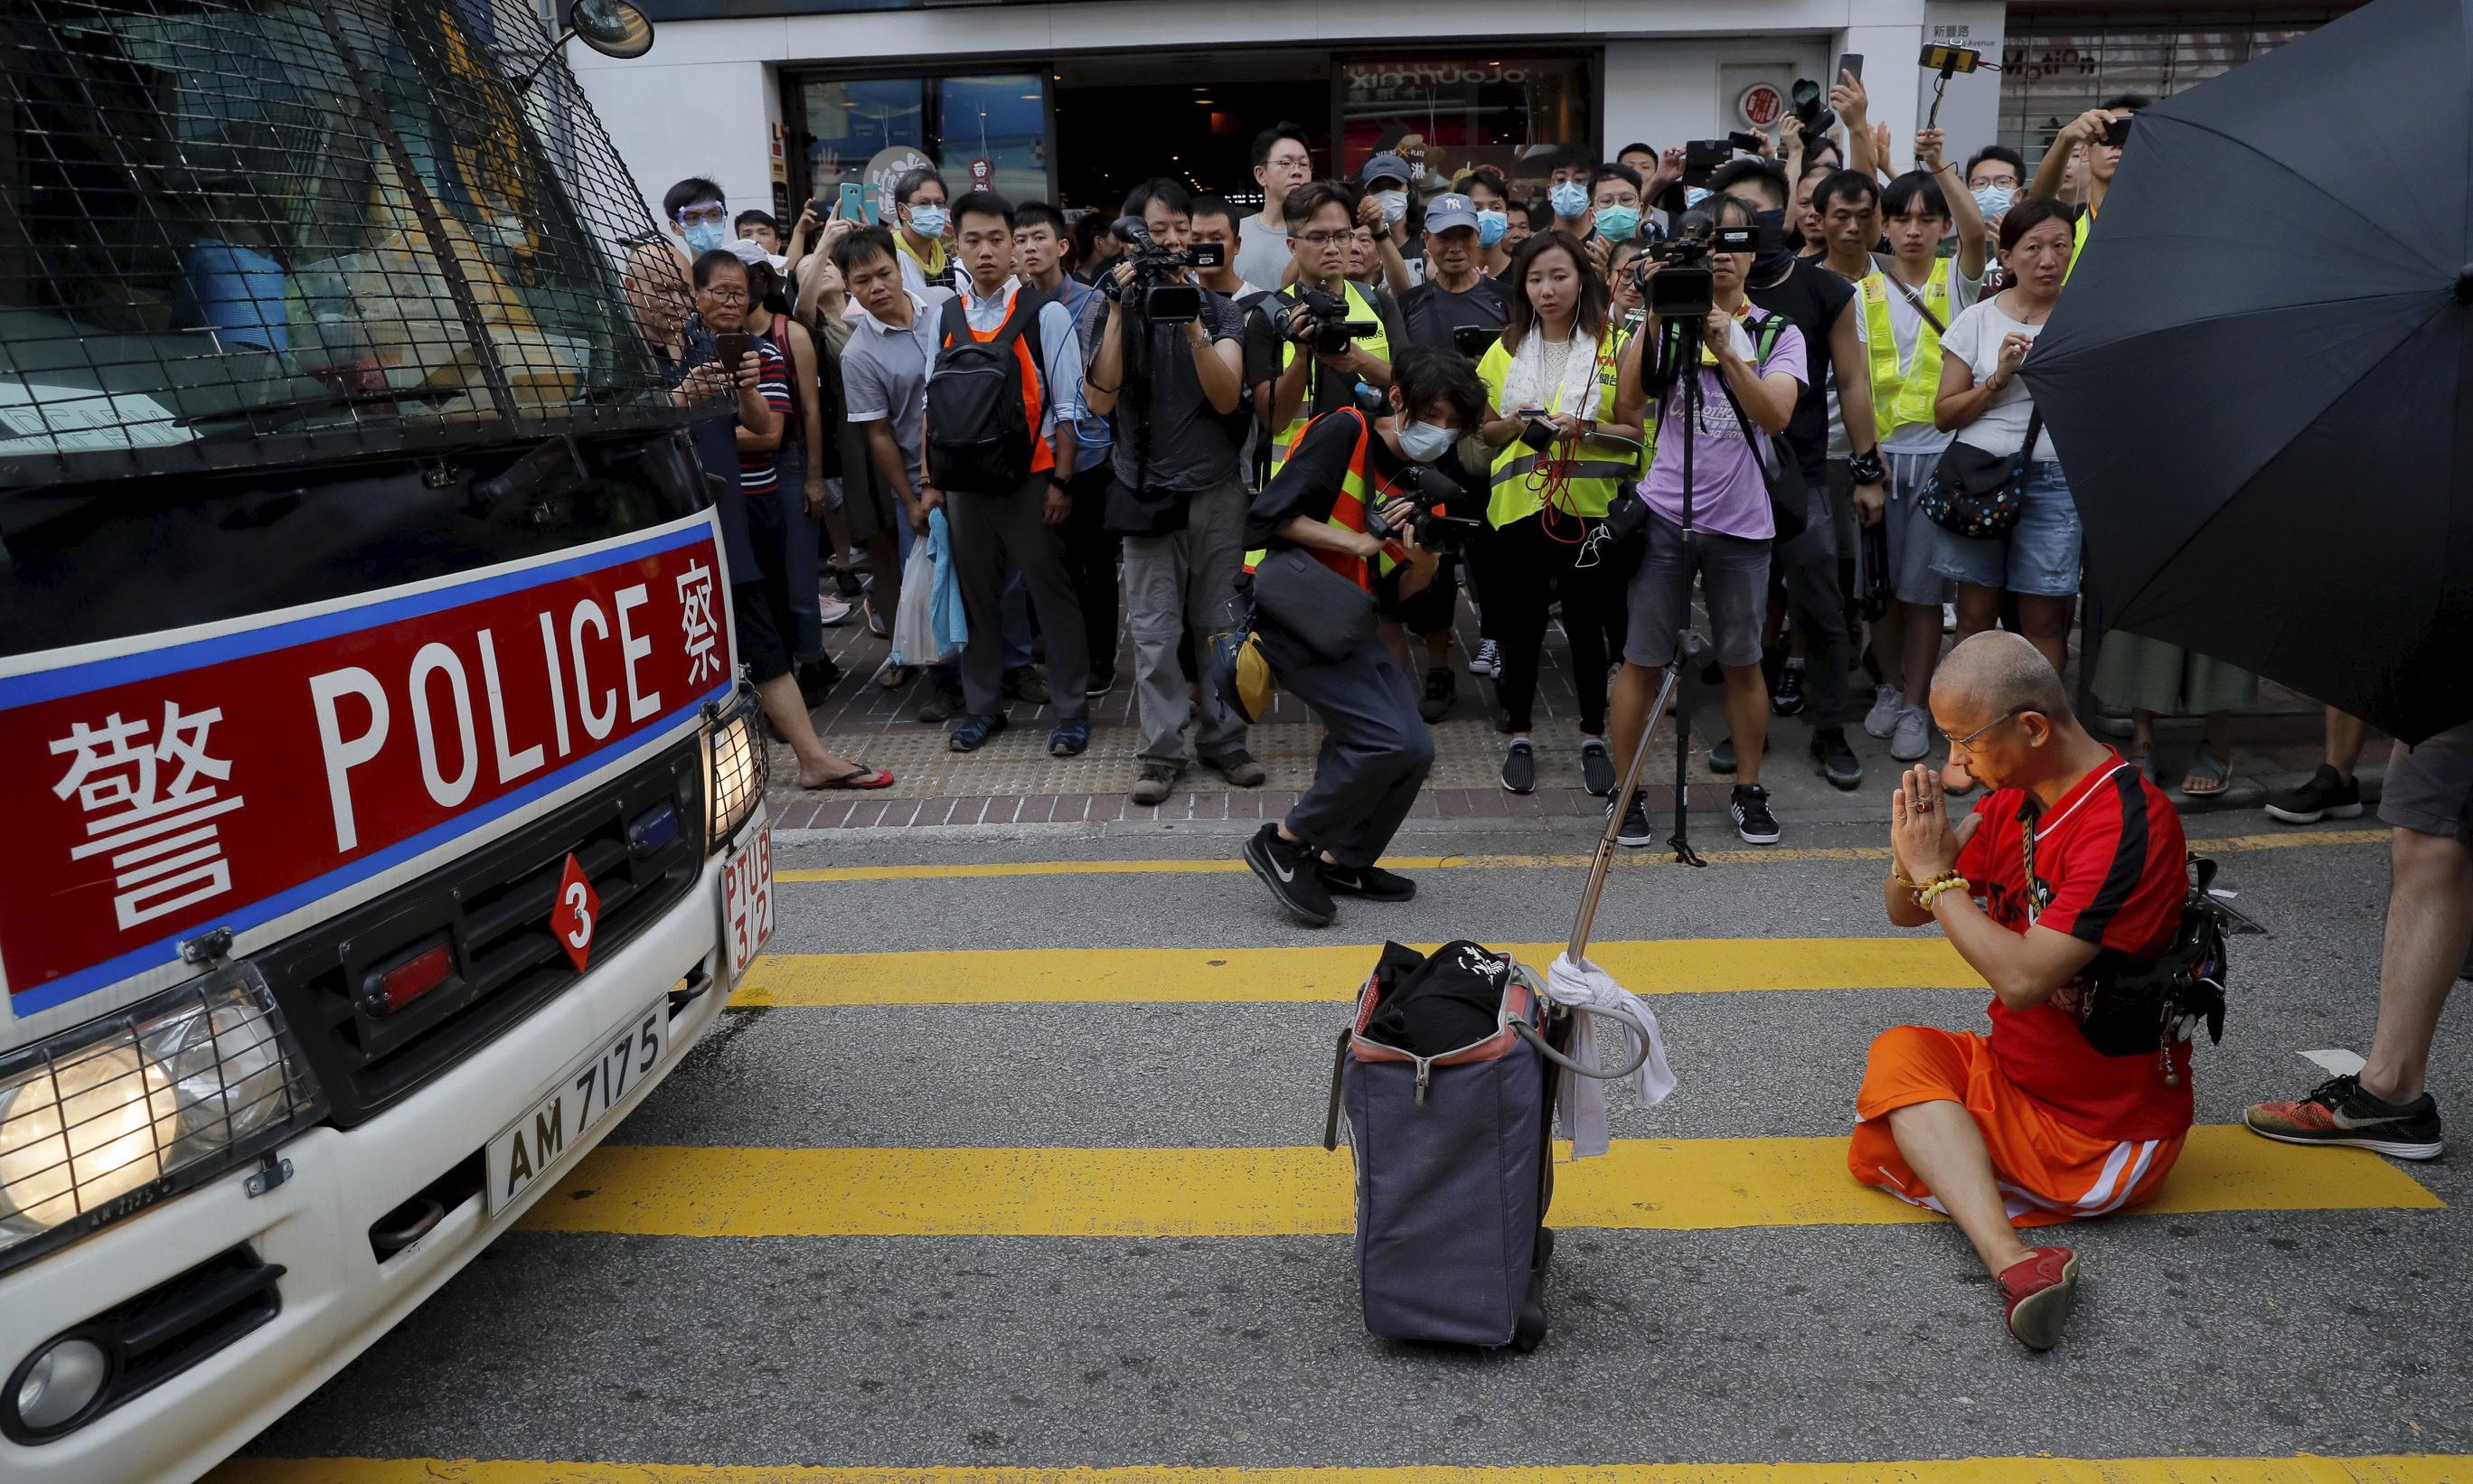 'Don't mess with us': the spirit of rebellion spreads in Hong Kong